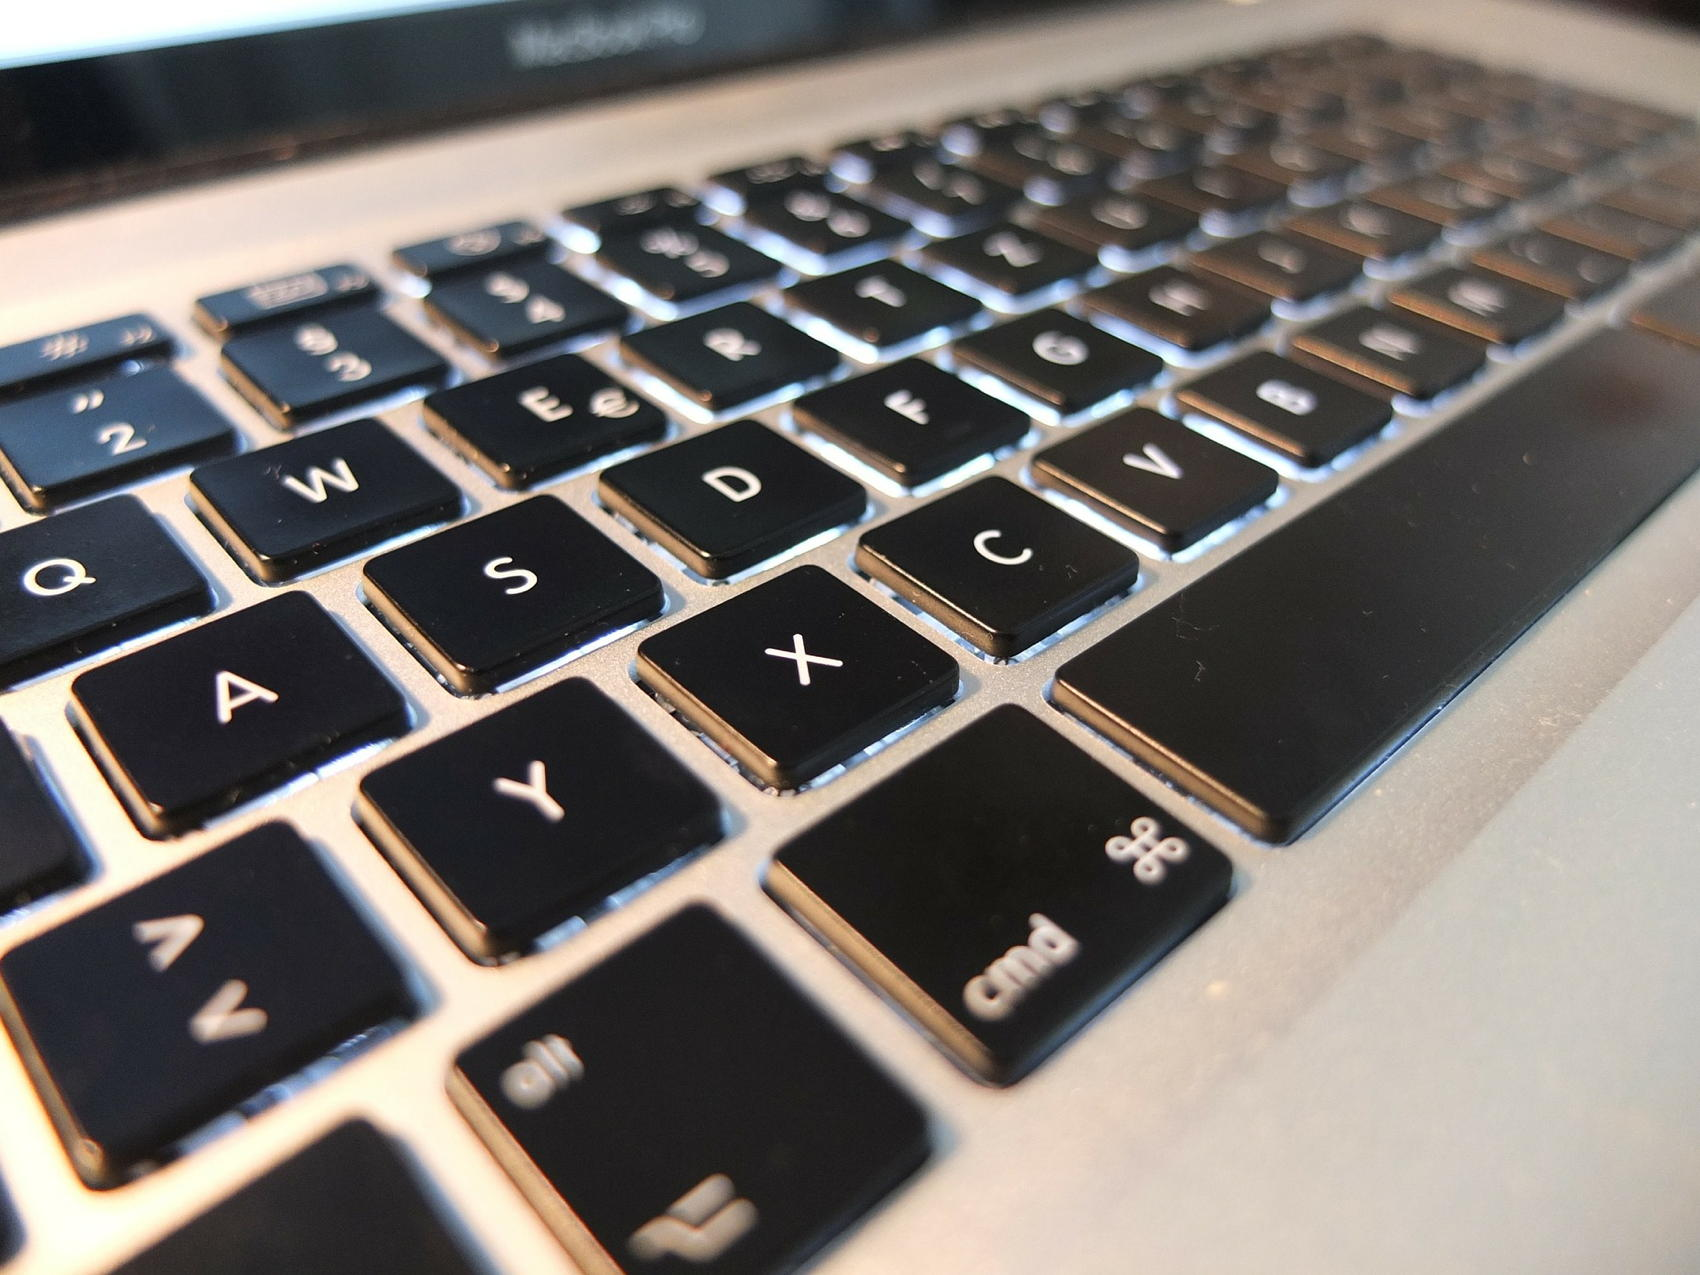 MacBook Pro Keyboard - Image by Robin Wolff